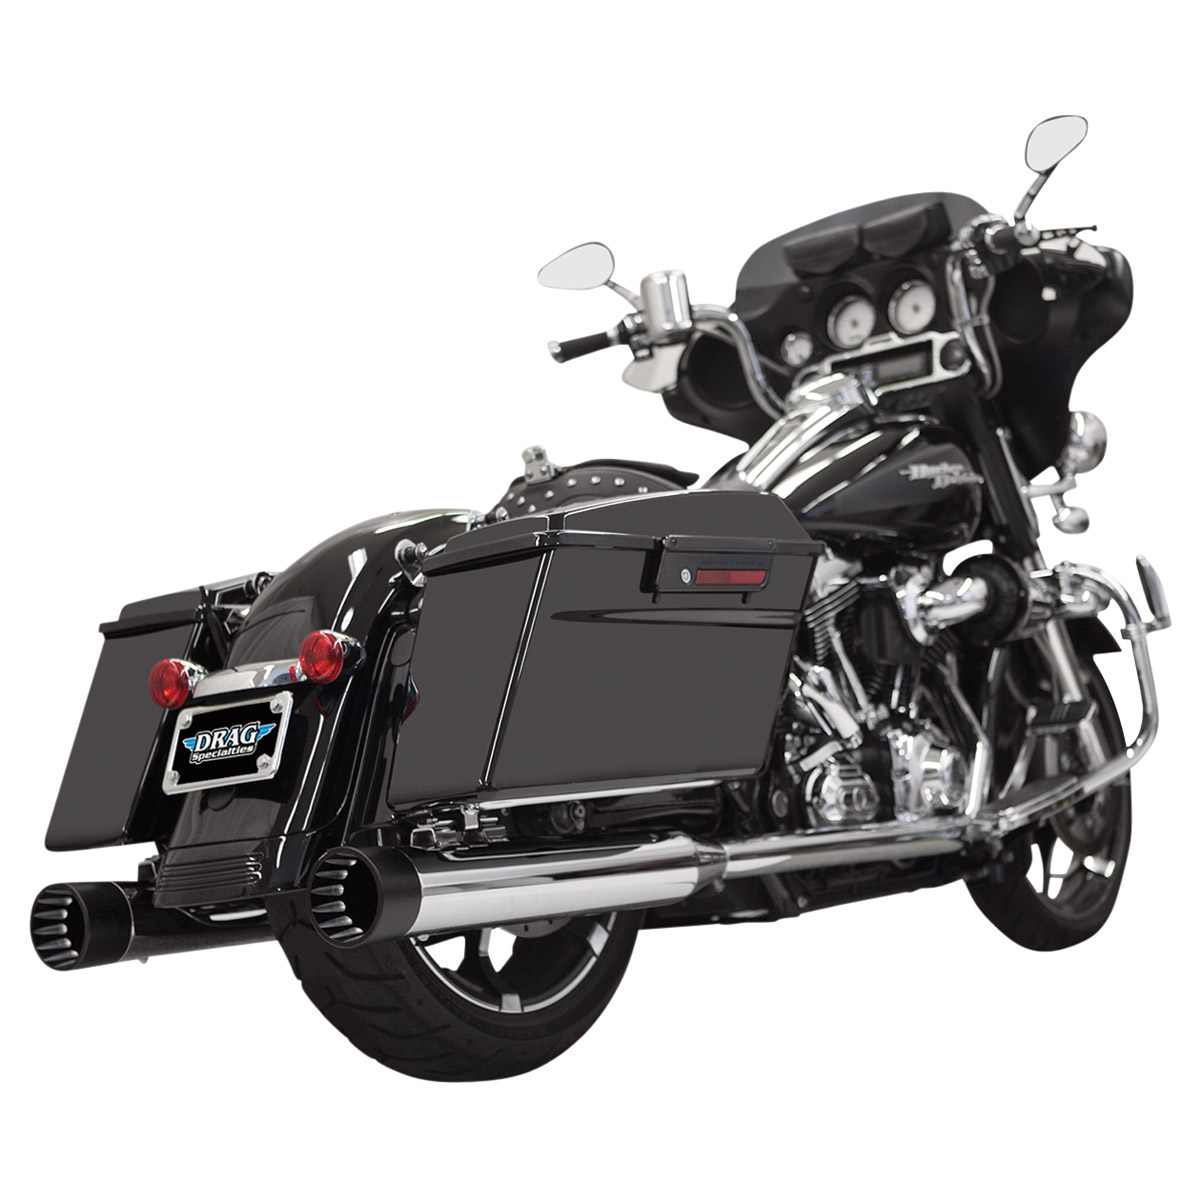 Bassani 4″ Straight Can DNT Slip On Mufflers Chrome with Black End Cap